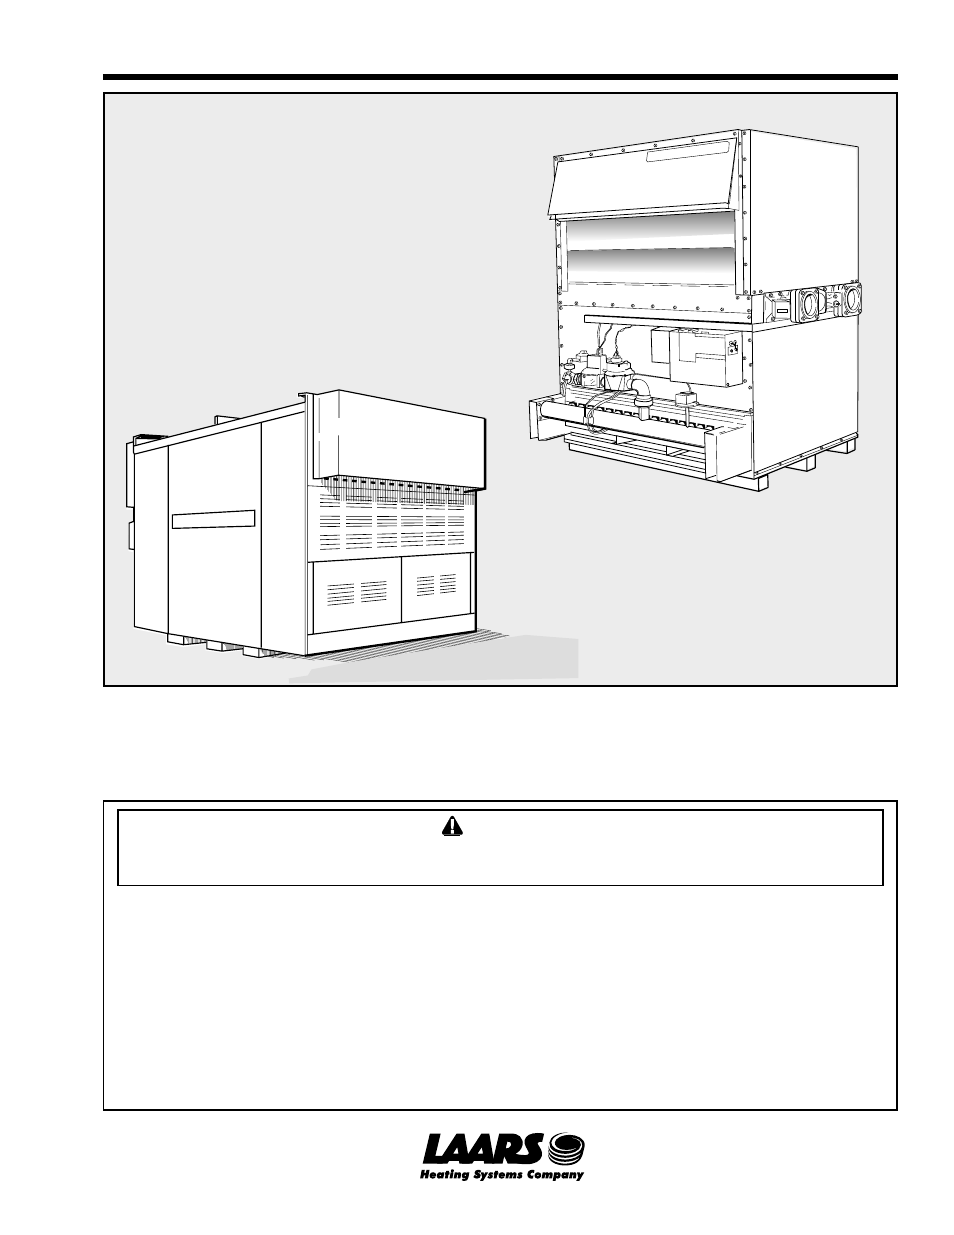 Laars Boilers Wiring Diagrams Hh 2000 Free Download Boiler Mighty Therm Sizes 5000 Installation Operation